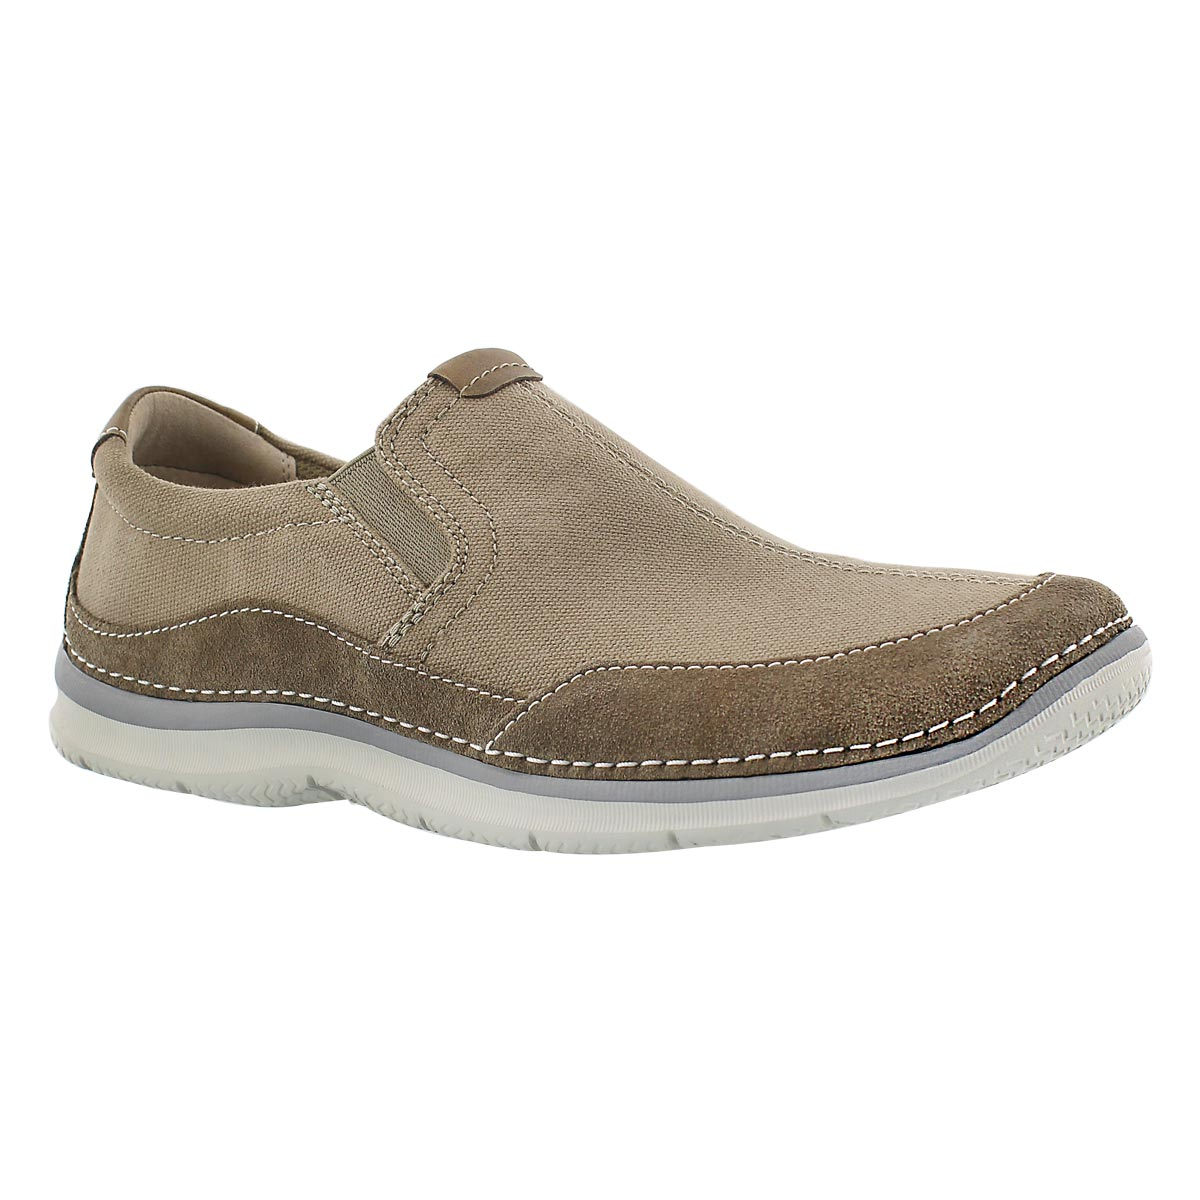 Men's RIPTON FREE olive slip on casual shoes